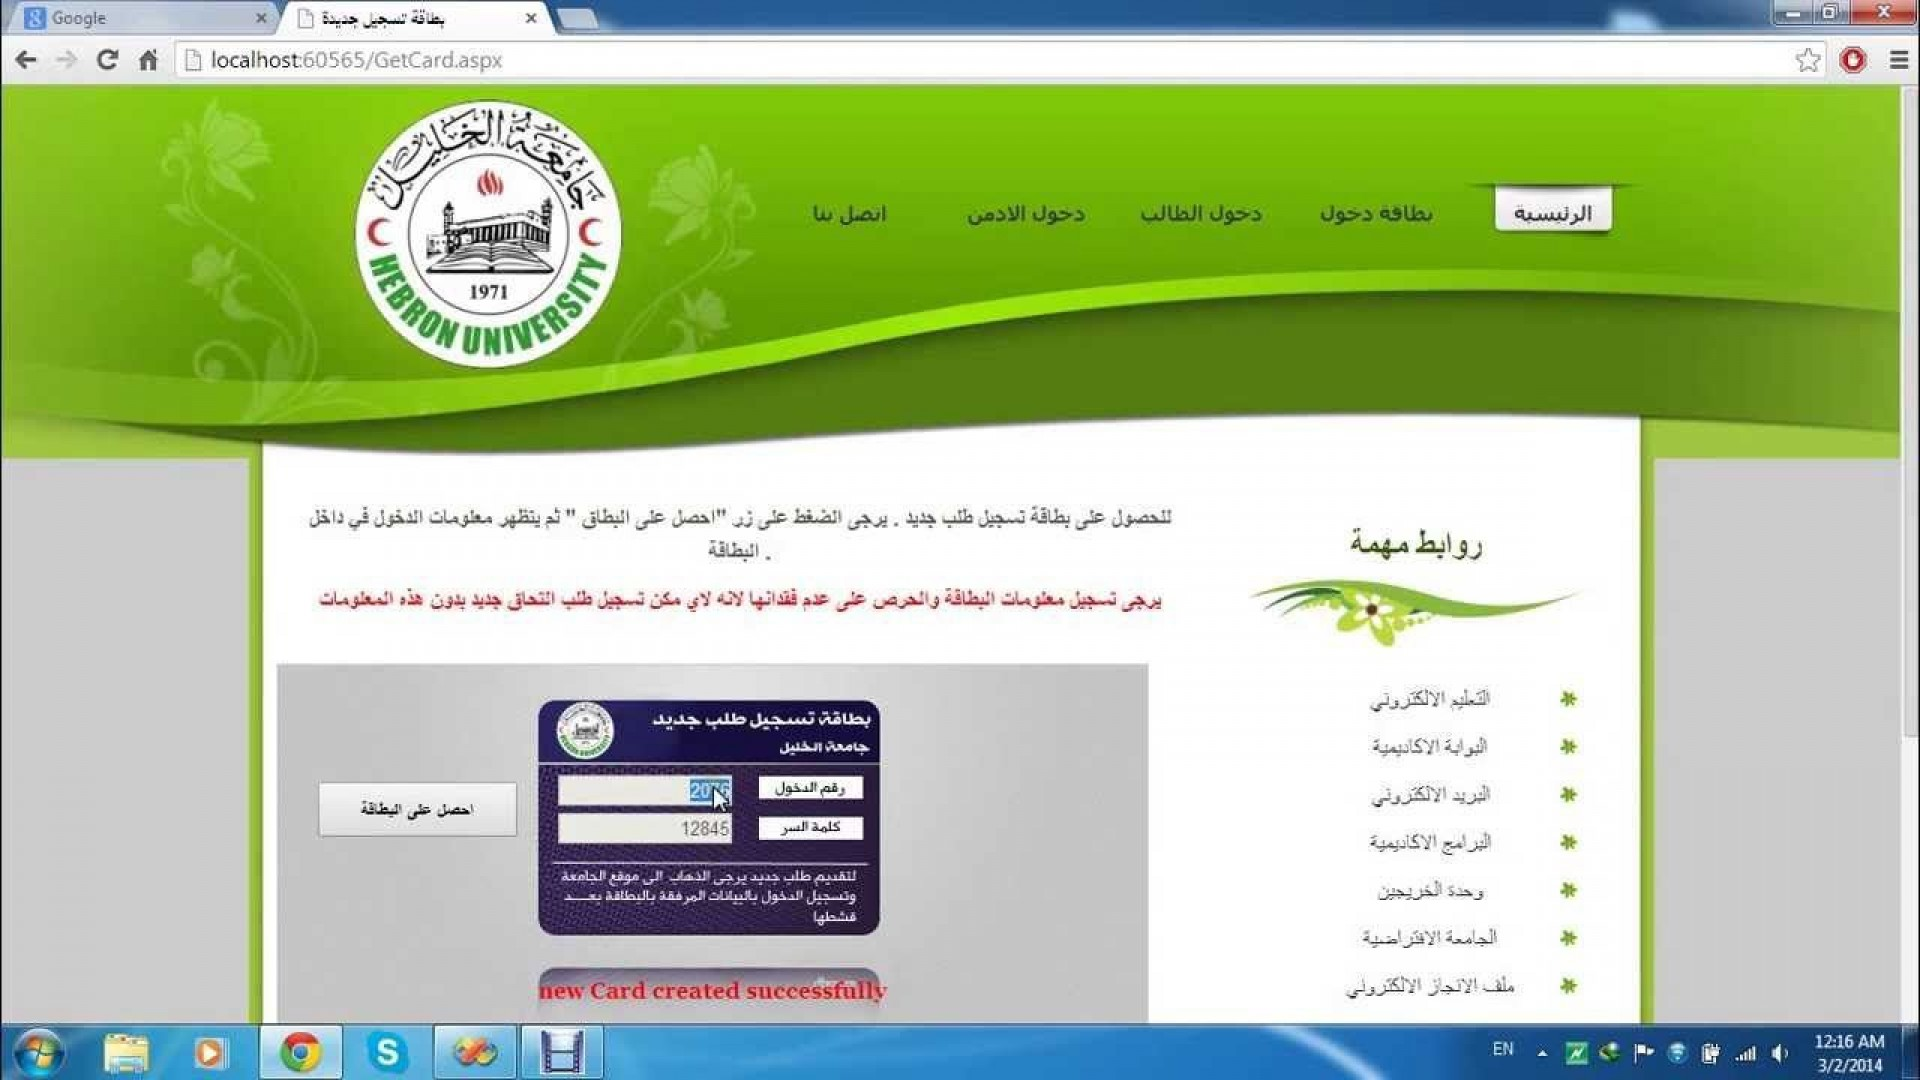 001 Formidable Web Page Design Template In Asp Net Sample  Asp.net1920